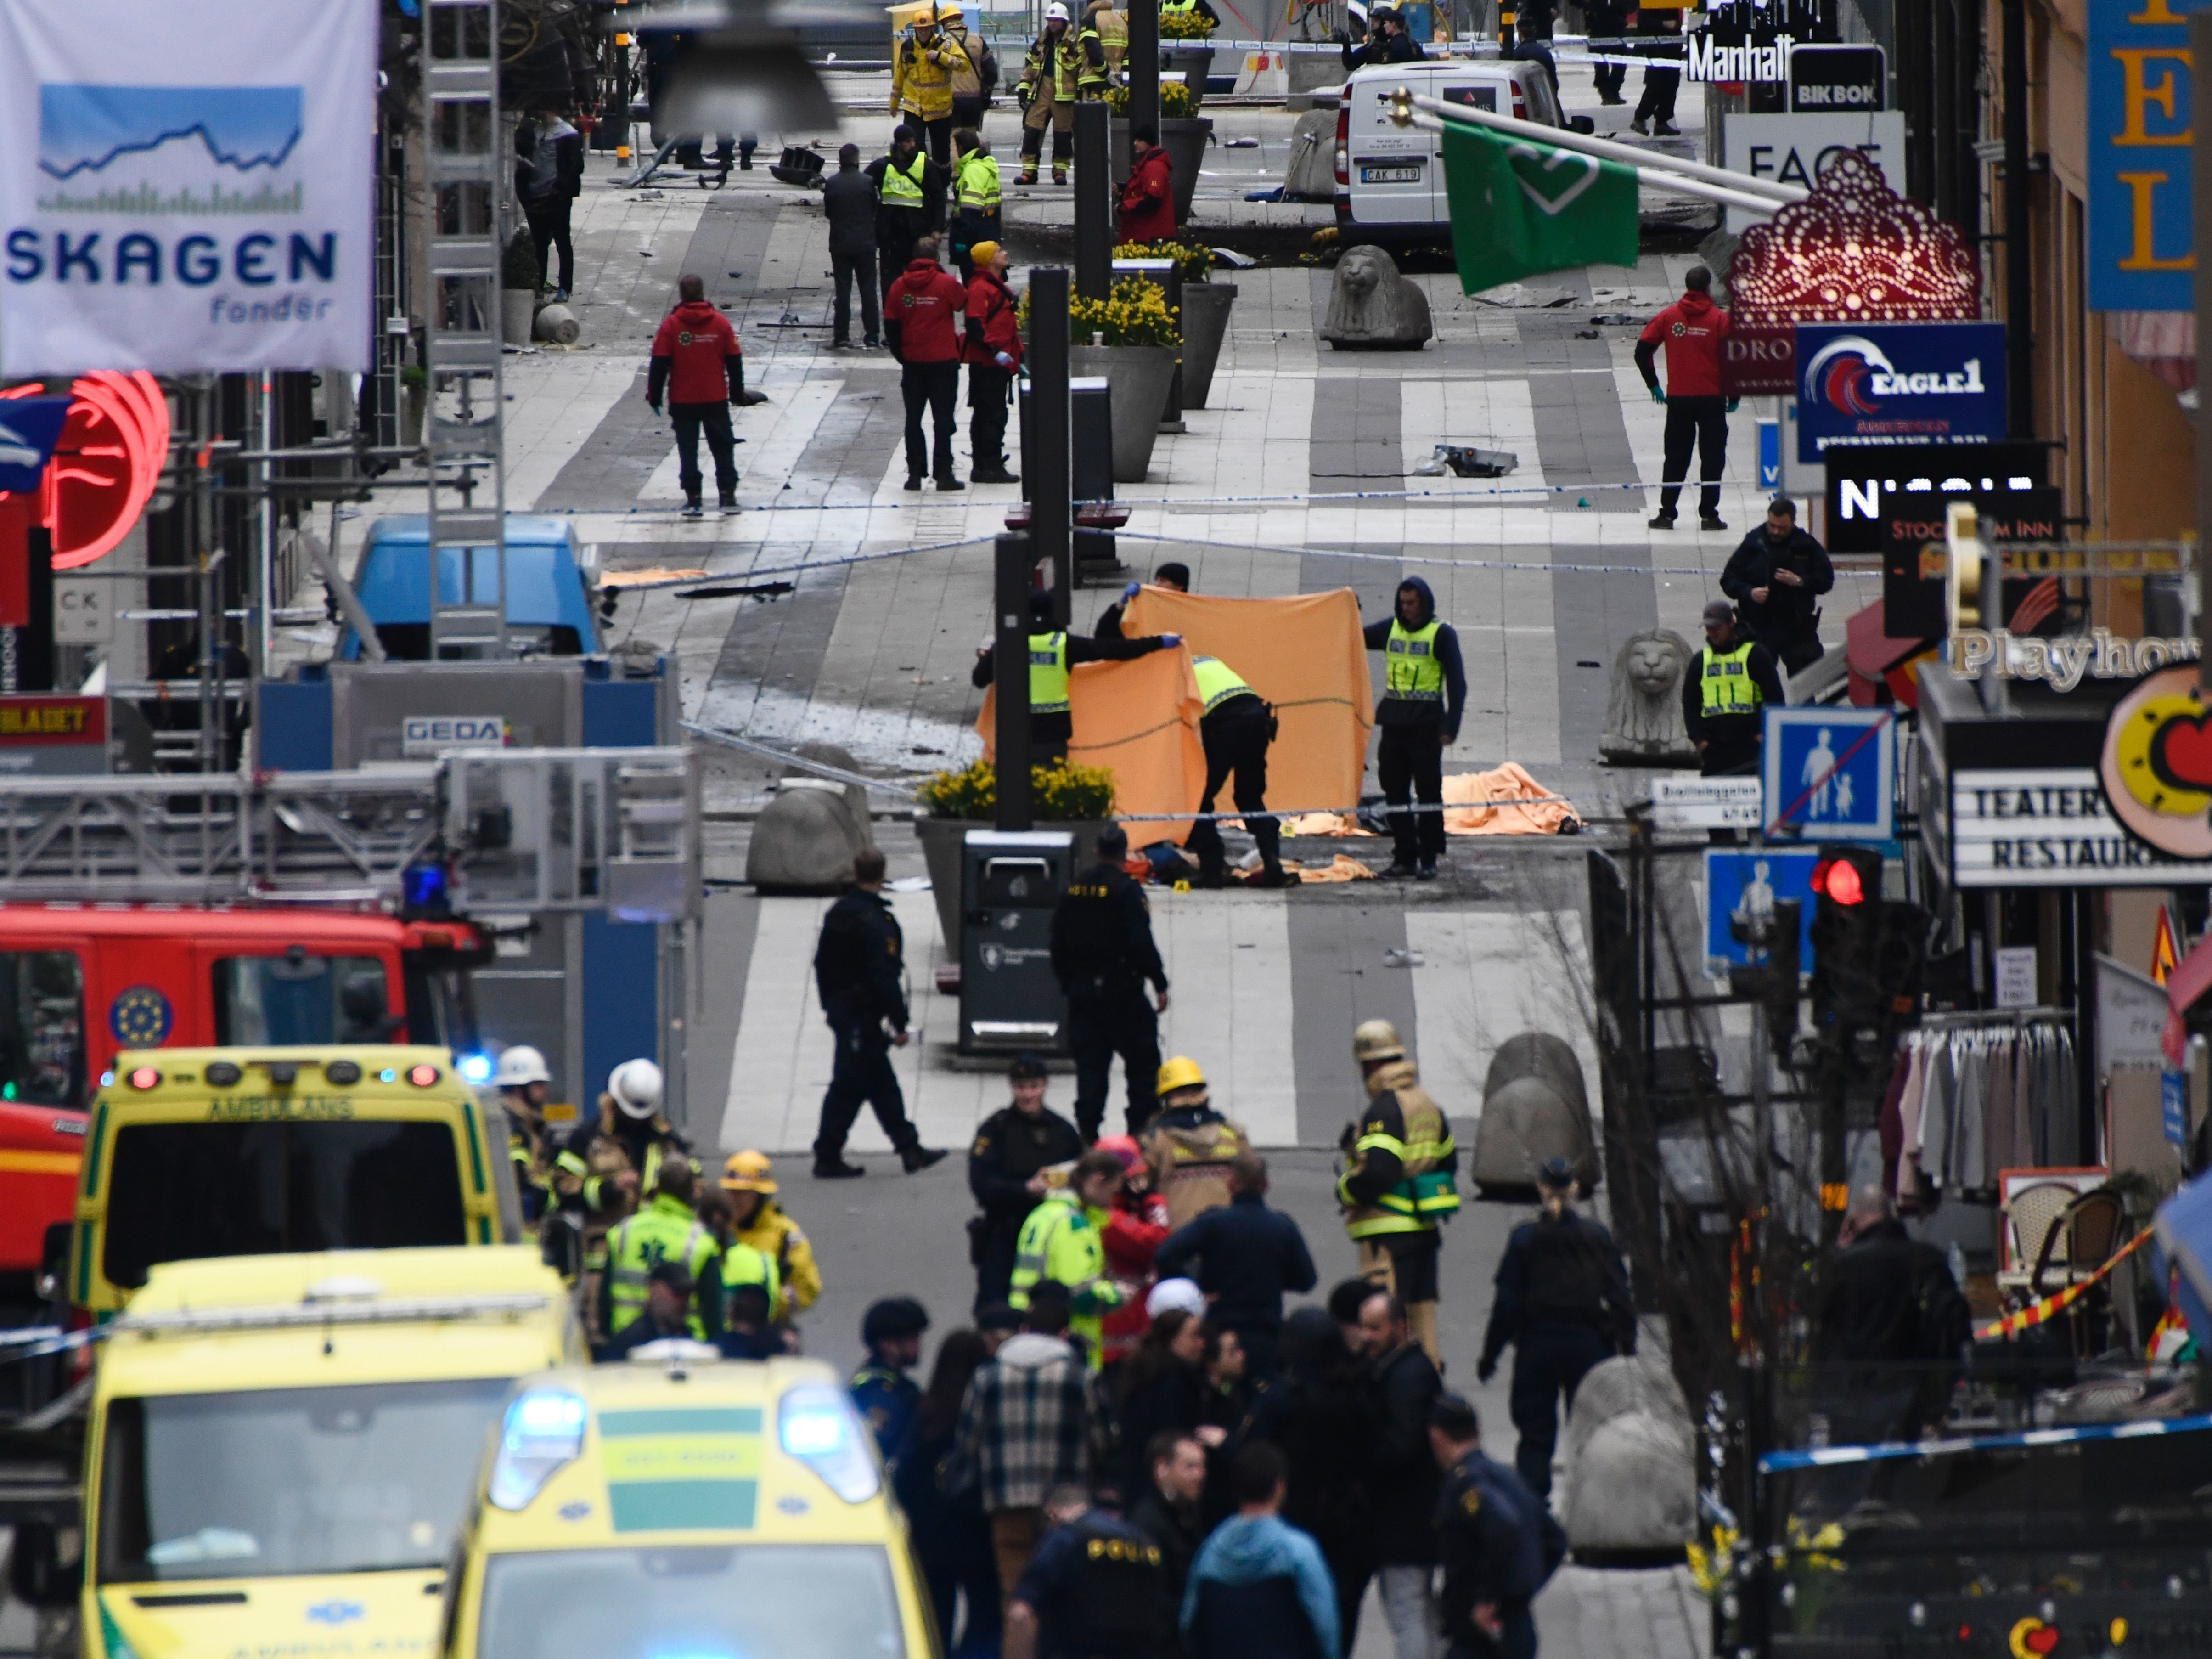 Emergency crews work at the scene where a truck crashed into the Ahlens department store in central Stockholm on Friday.     (Jonathan Nackstrand/AFP/Getty Images)